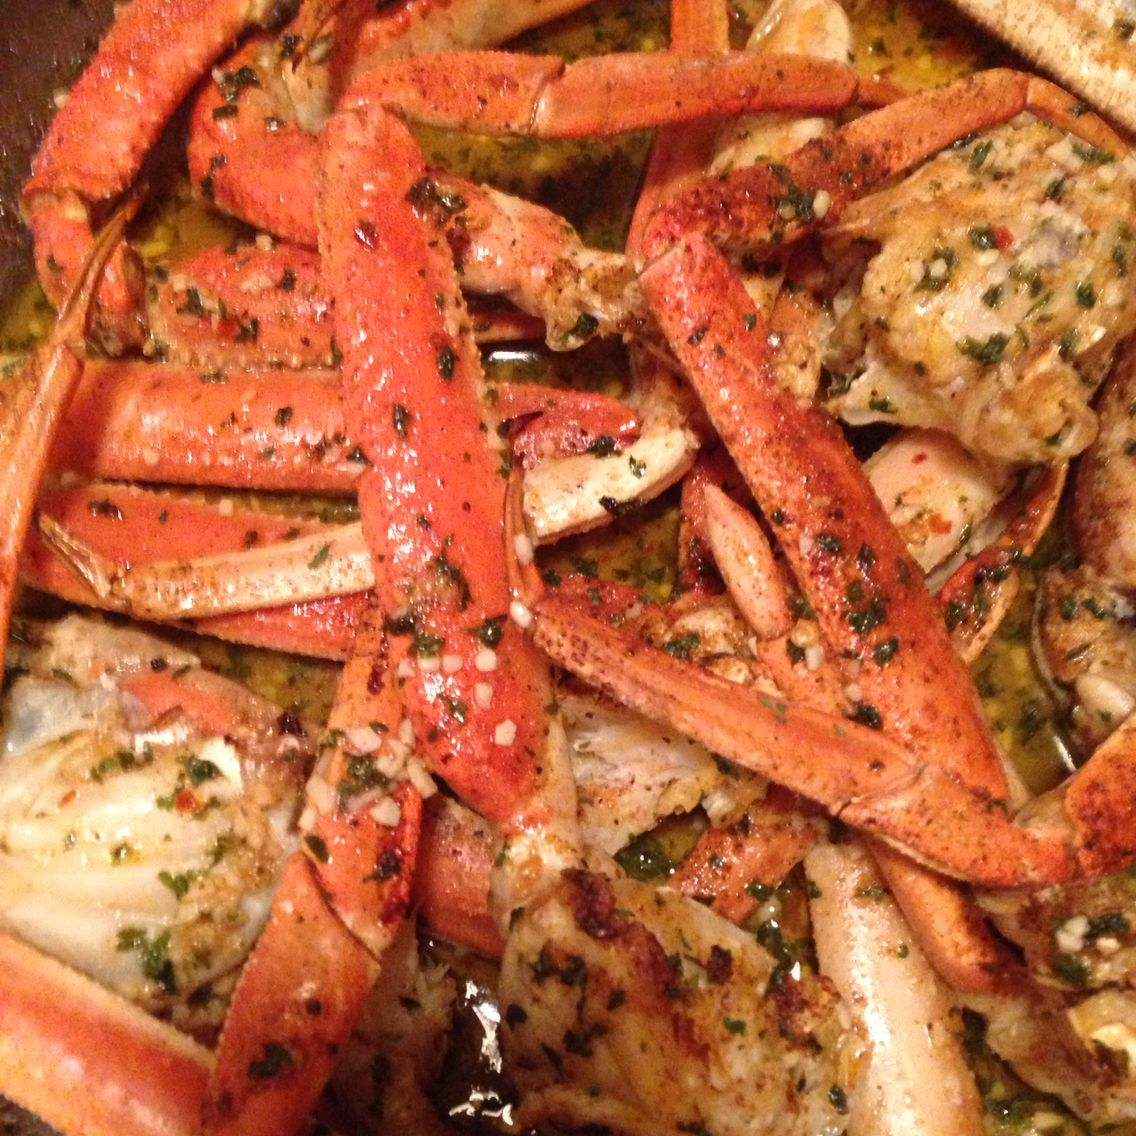 My Spicy Garlic Butter Baked Snow Crab Legs Crab Legs Recipe Baked Crab Legs Crab Leg Recipes Boiled